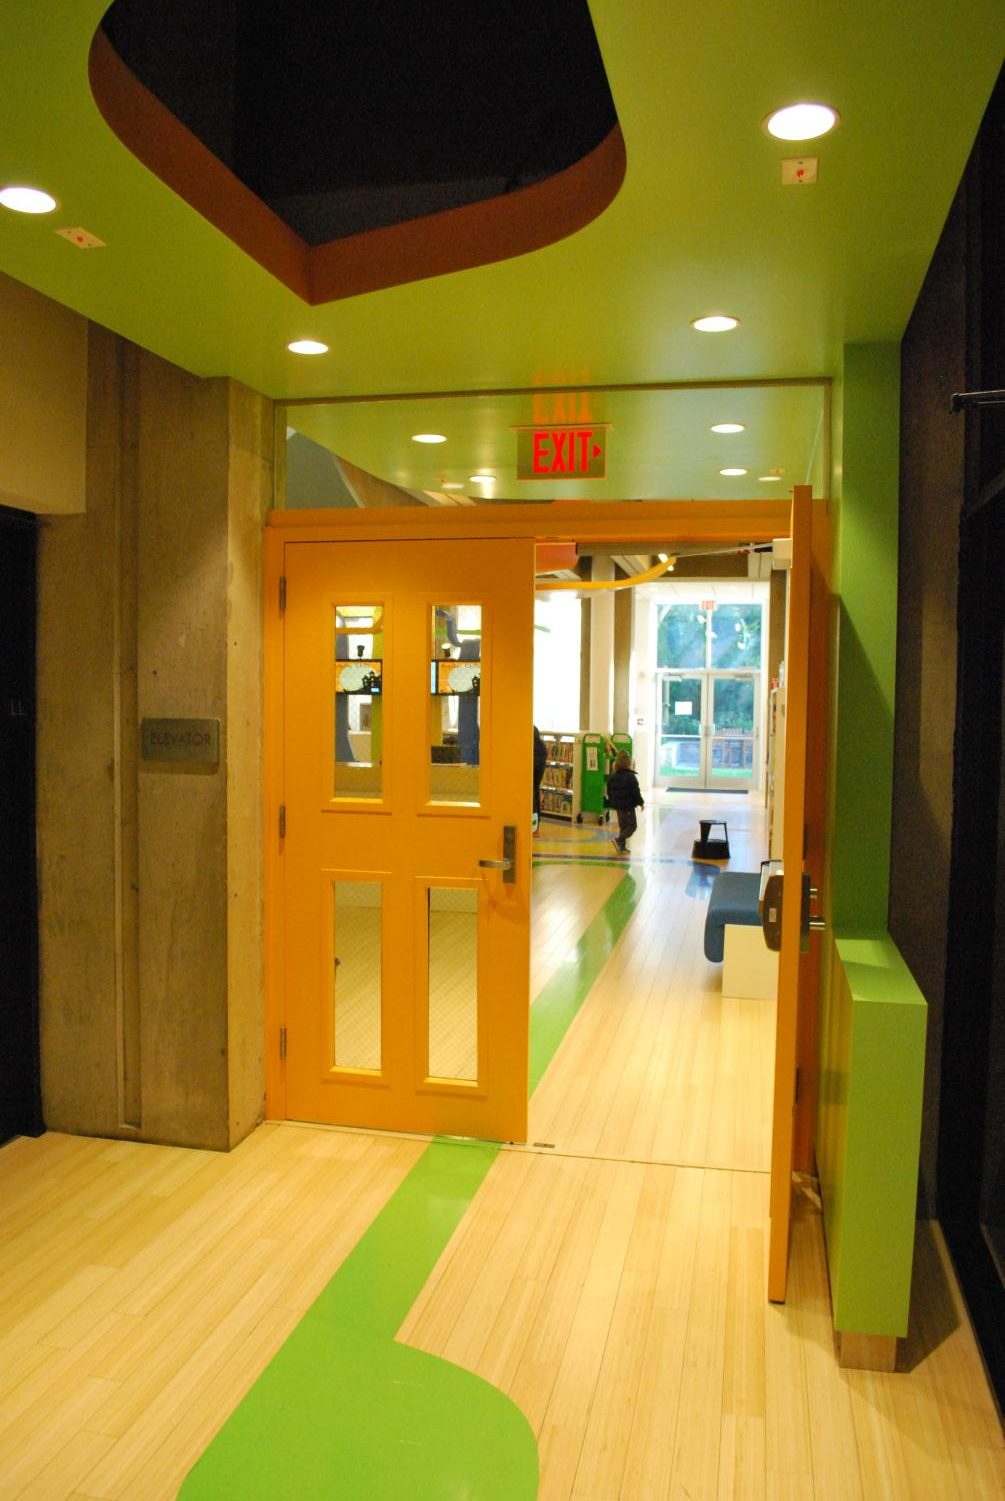 The entrance to the Children's Room is now vibrant and more welcoming.